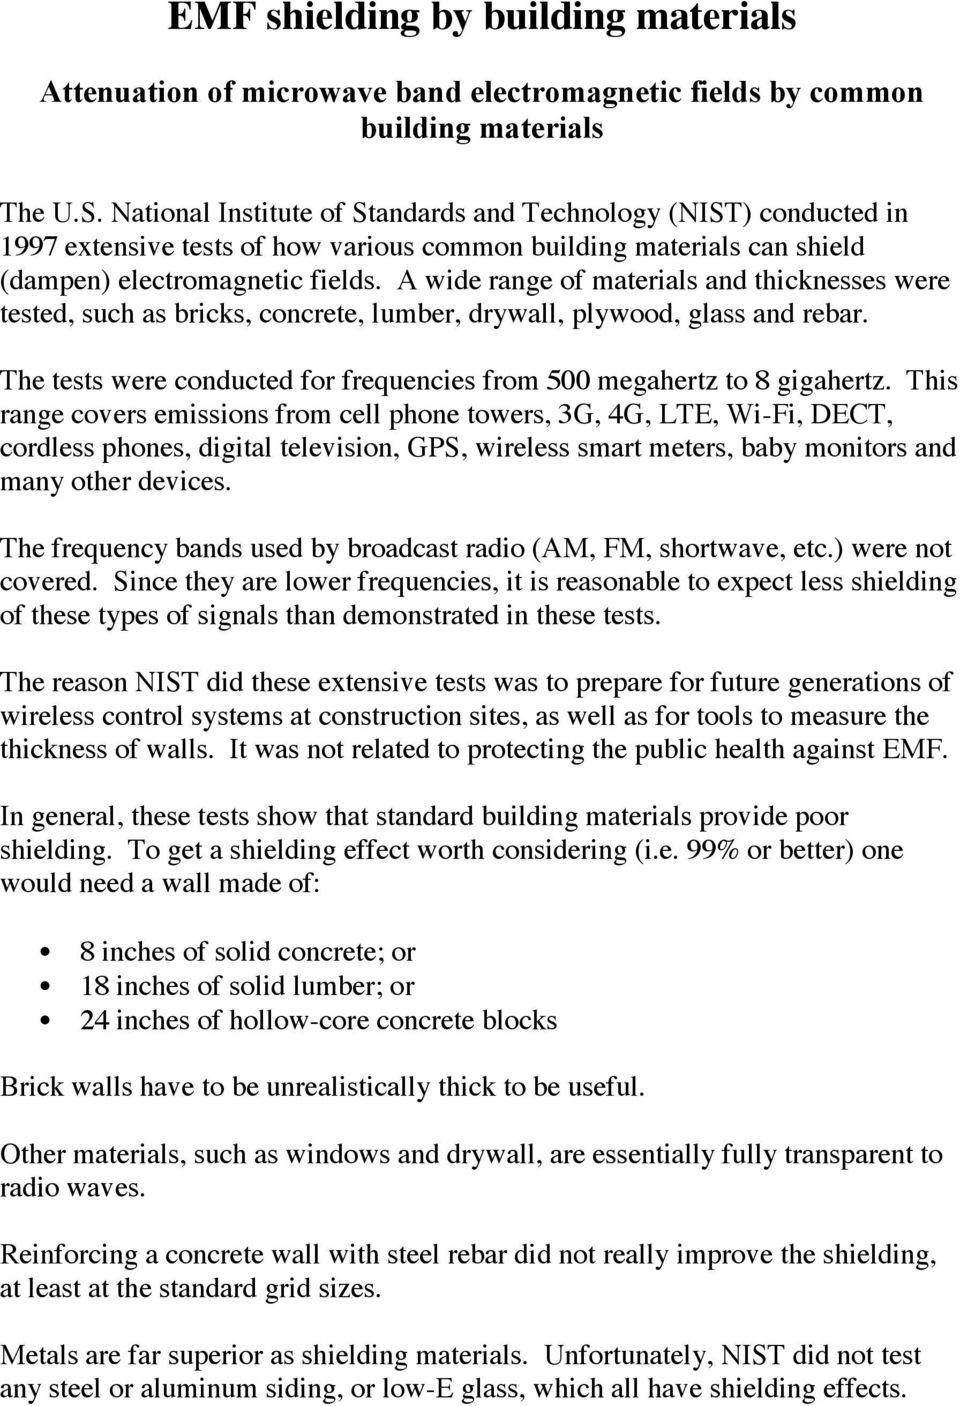 EMF shielding by building materials - PDF